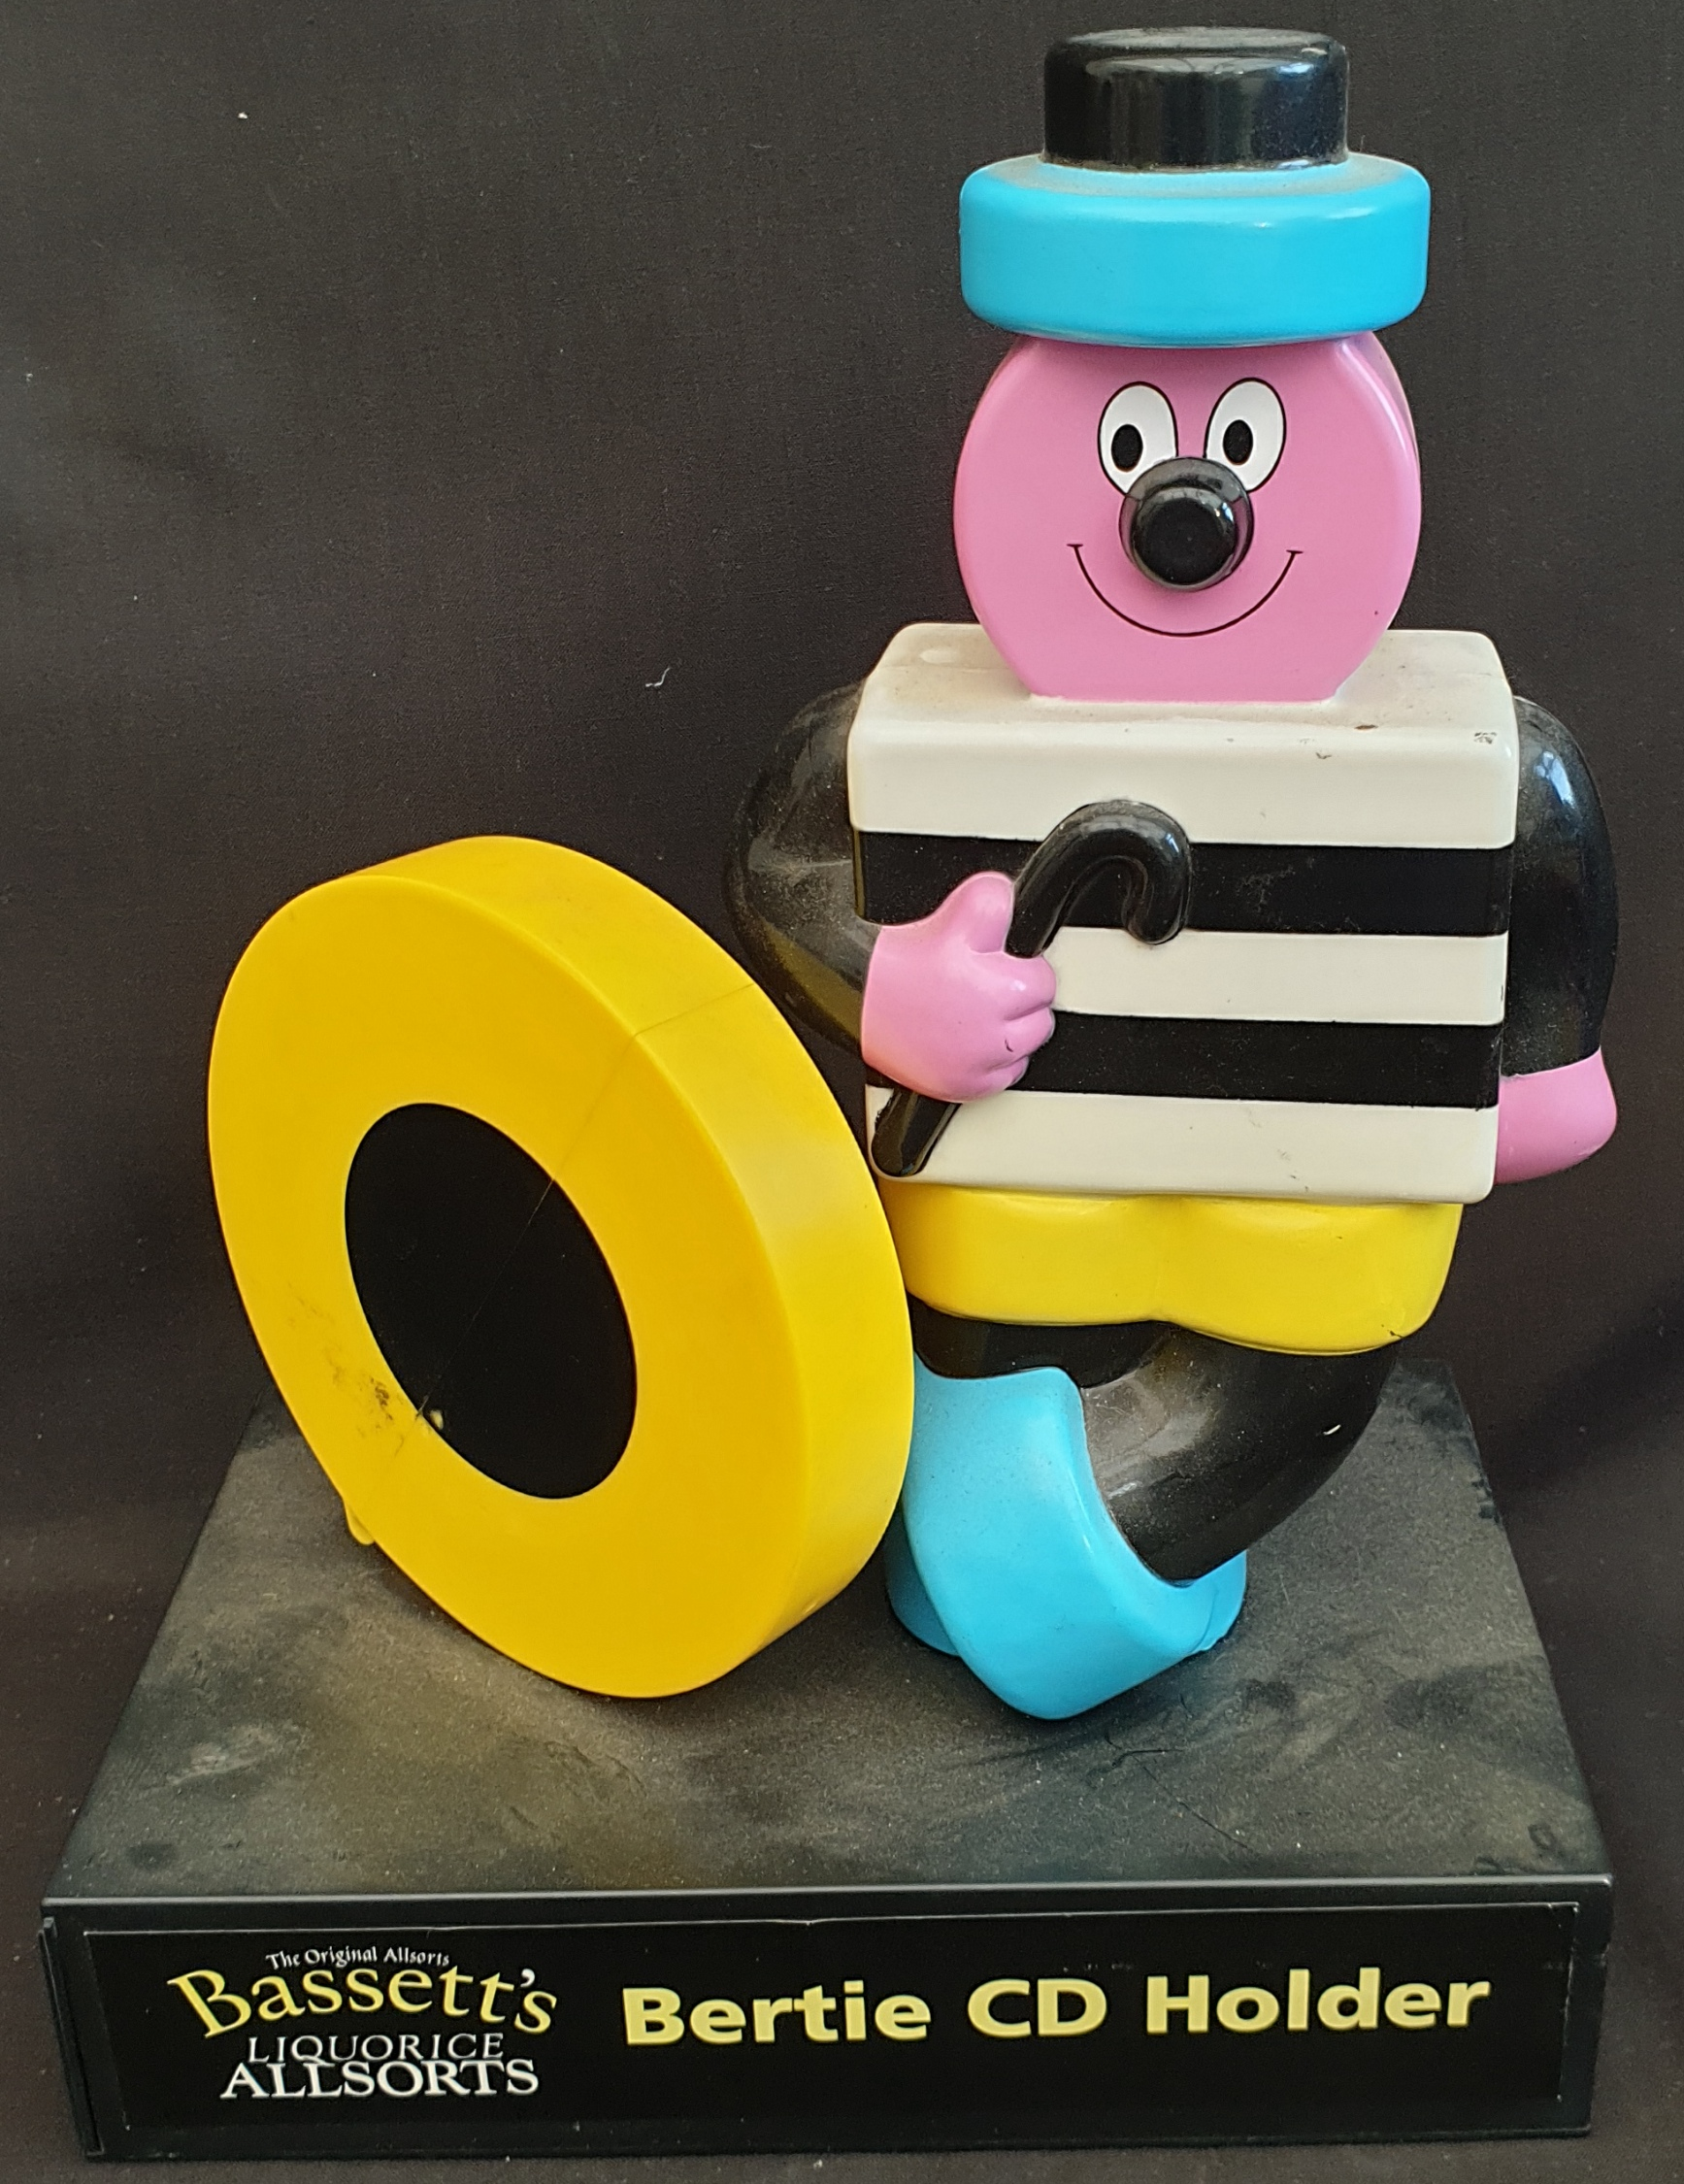 Novelty Bassett's Allsorts Money Box & CD Holder - Image 3 of 3